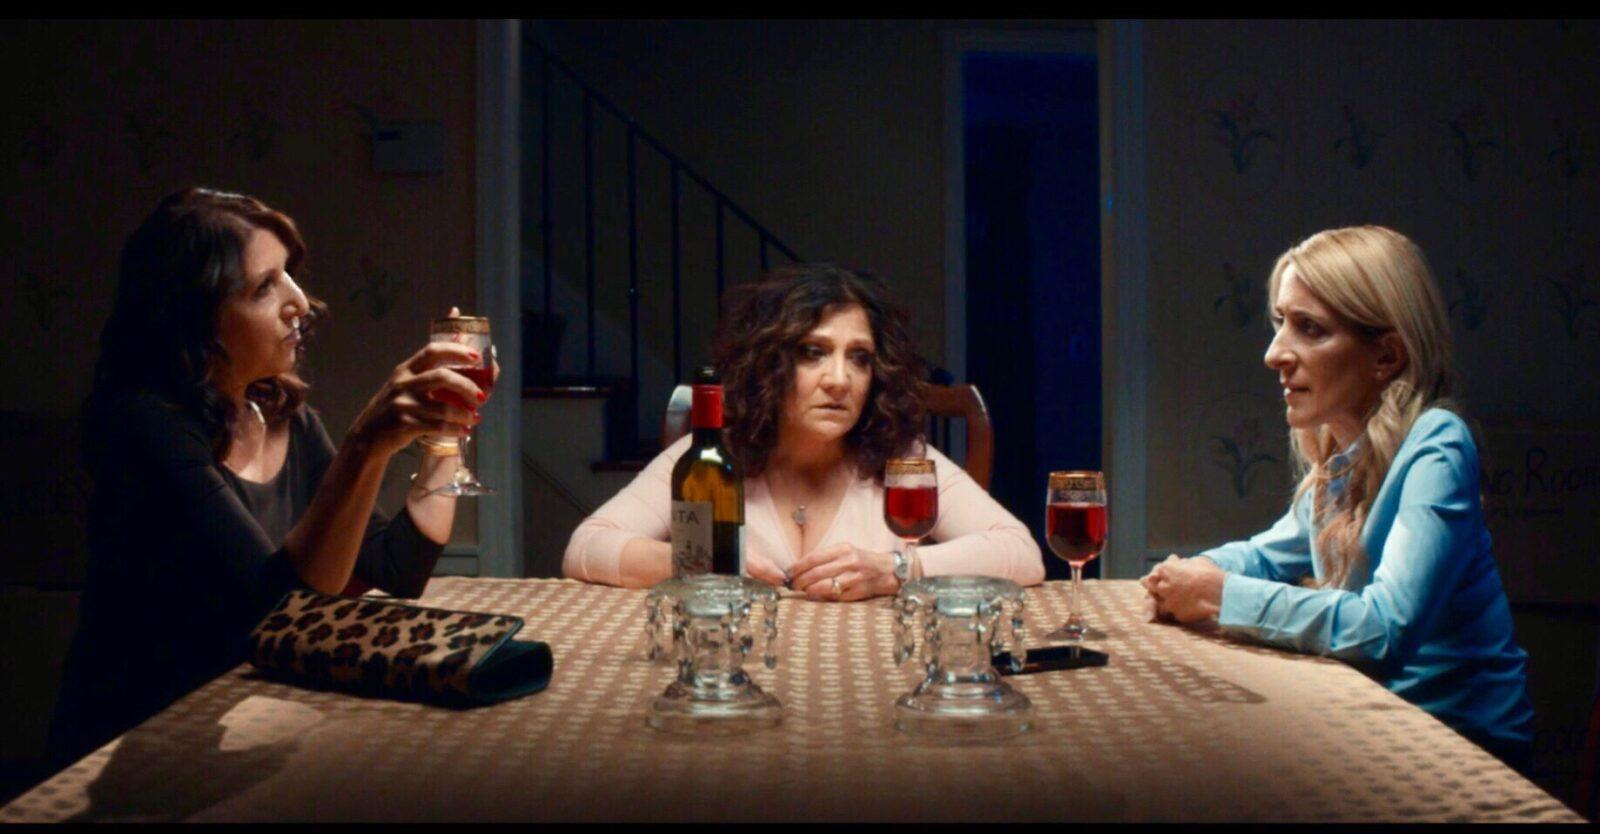 3 woman sitting around a table drinking wine.